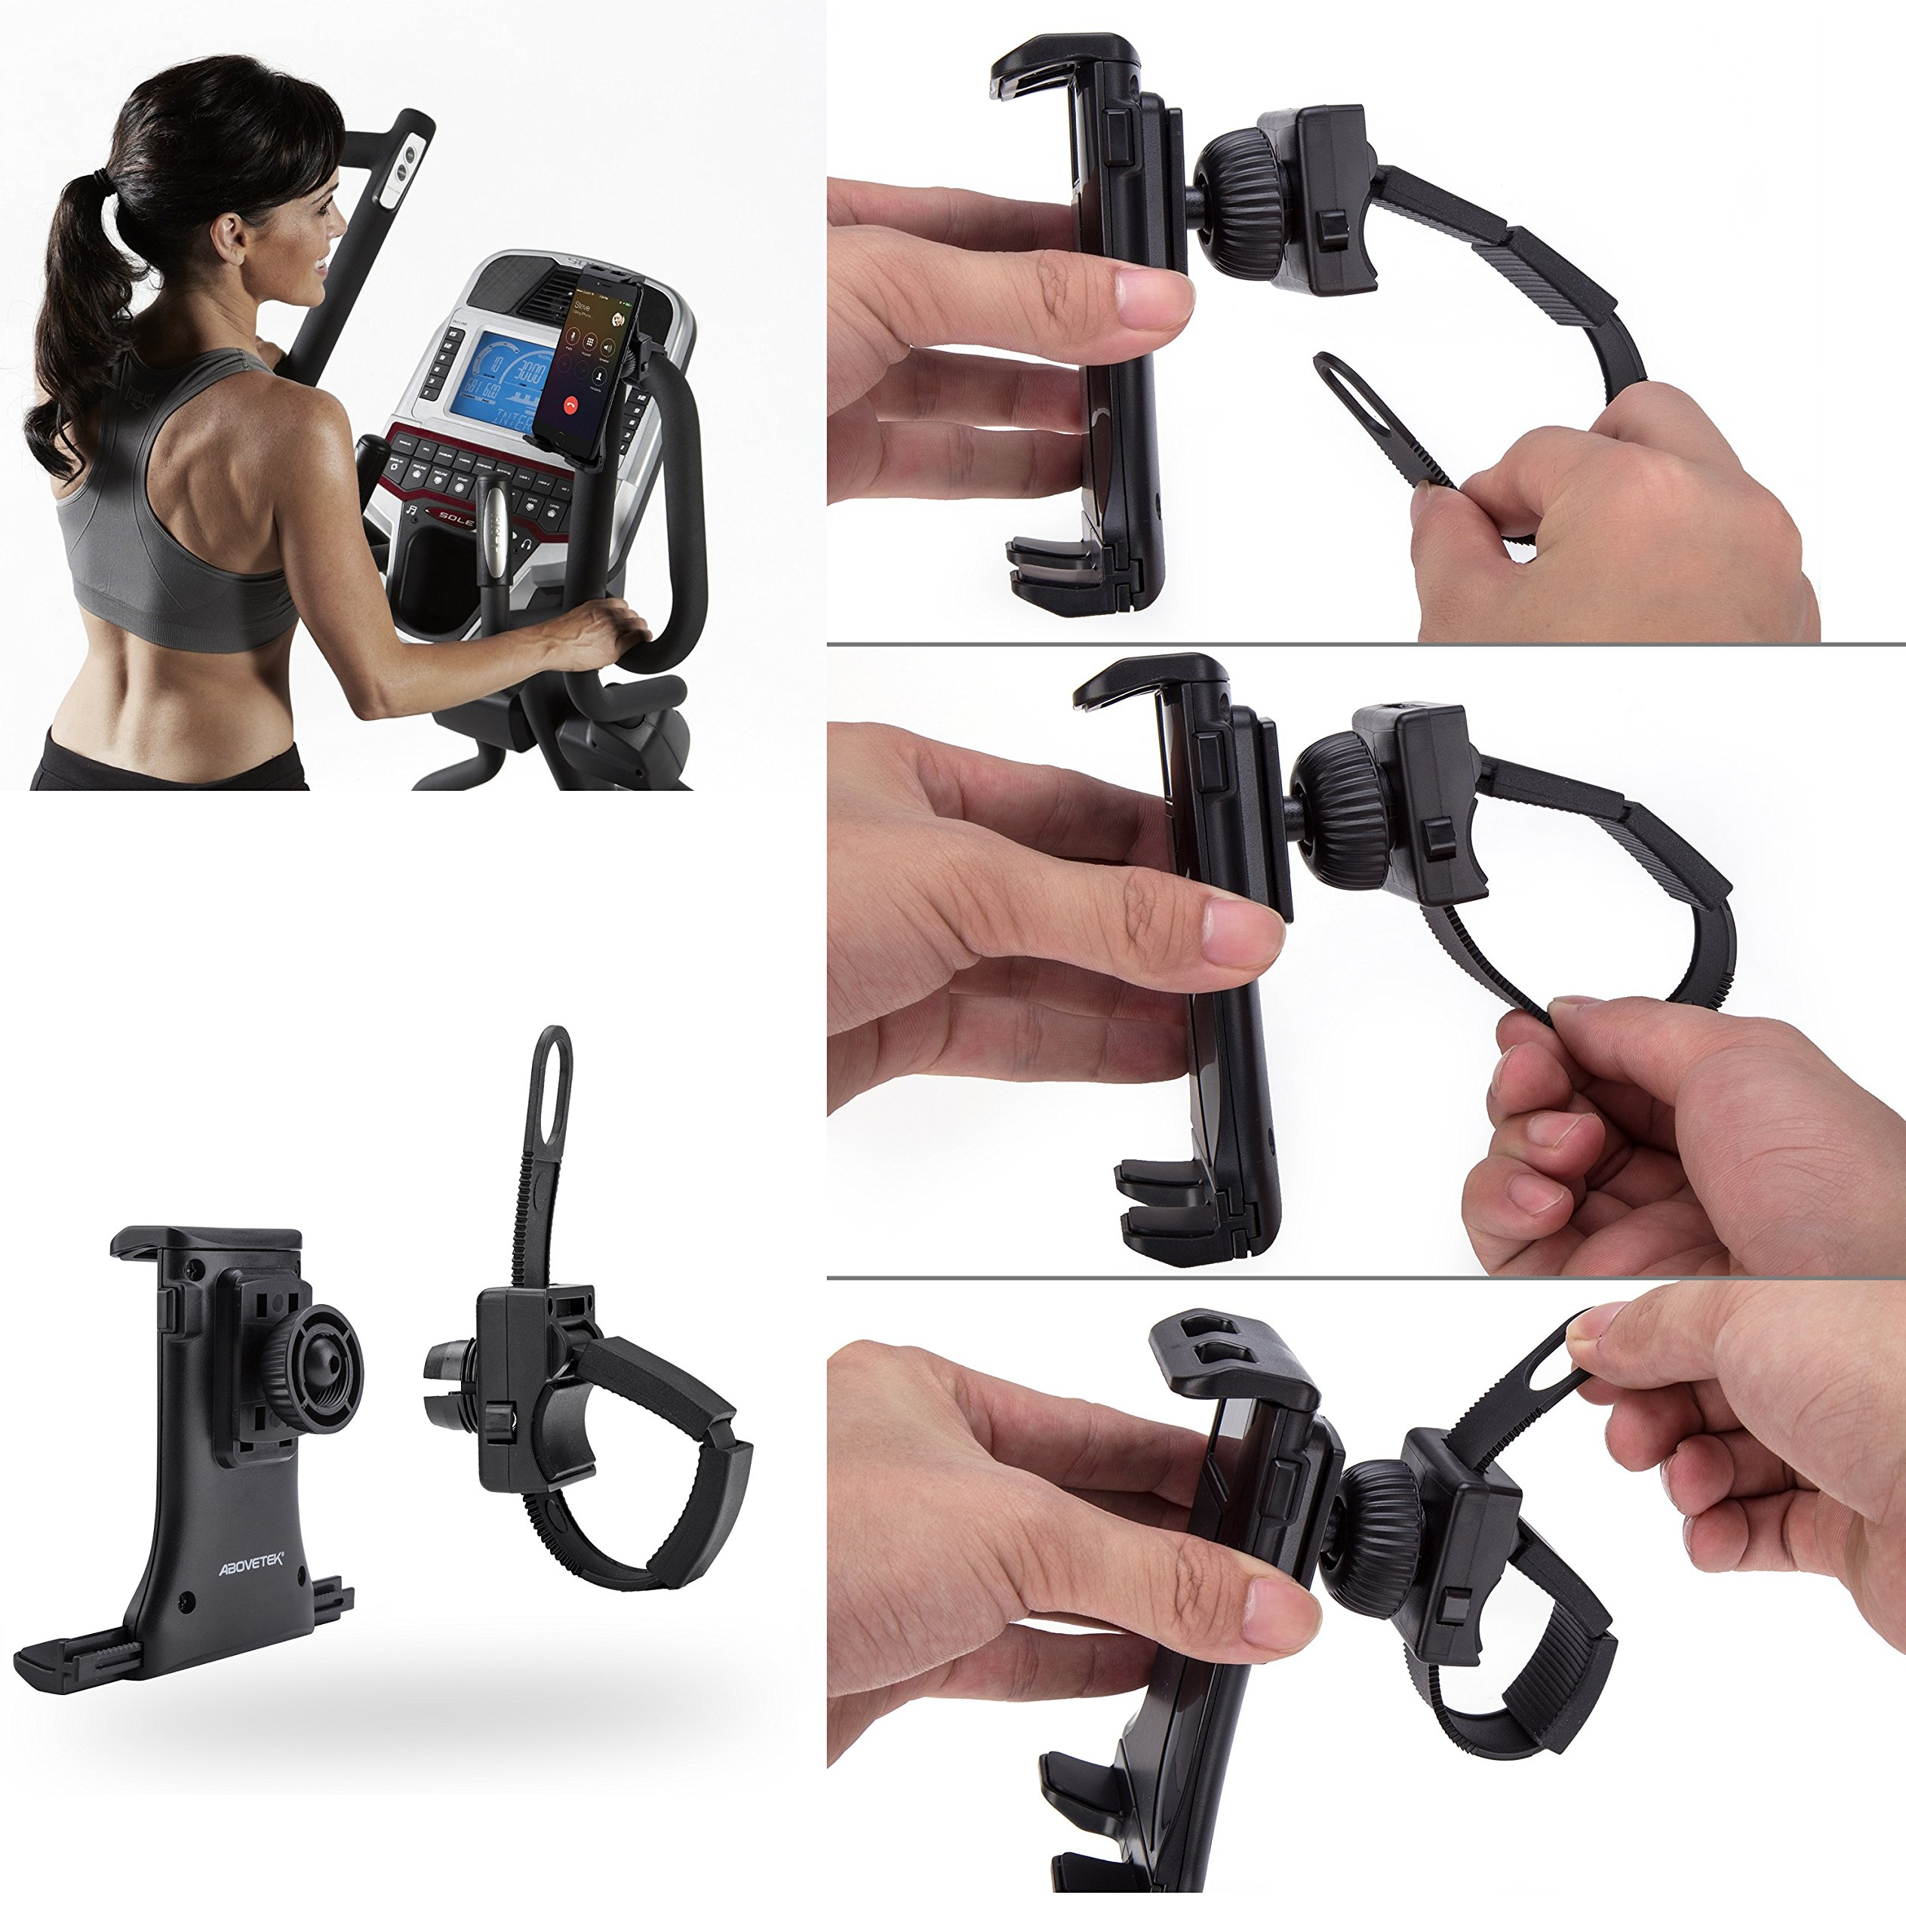 AboveTEK All-In-One Cycling Bike iPad/iPhone Mount, Portable Compact Tablet Holder for Indoor Gym Handlebar on Exercise Bikes & Treadmills, Adjustable 360° Swivel Stand For 3.5-12'' Tablets/Cell Phones by AboveTEK (Image #4)